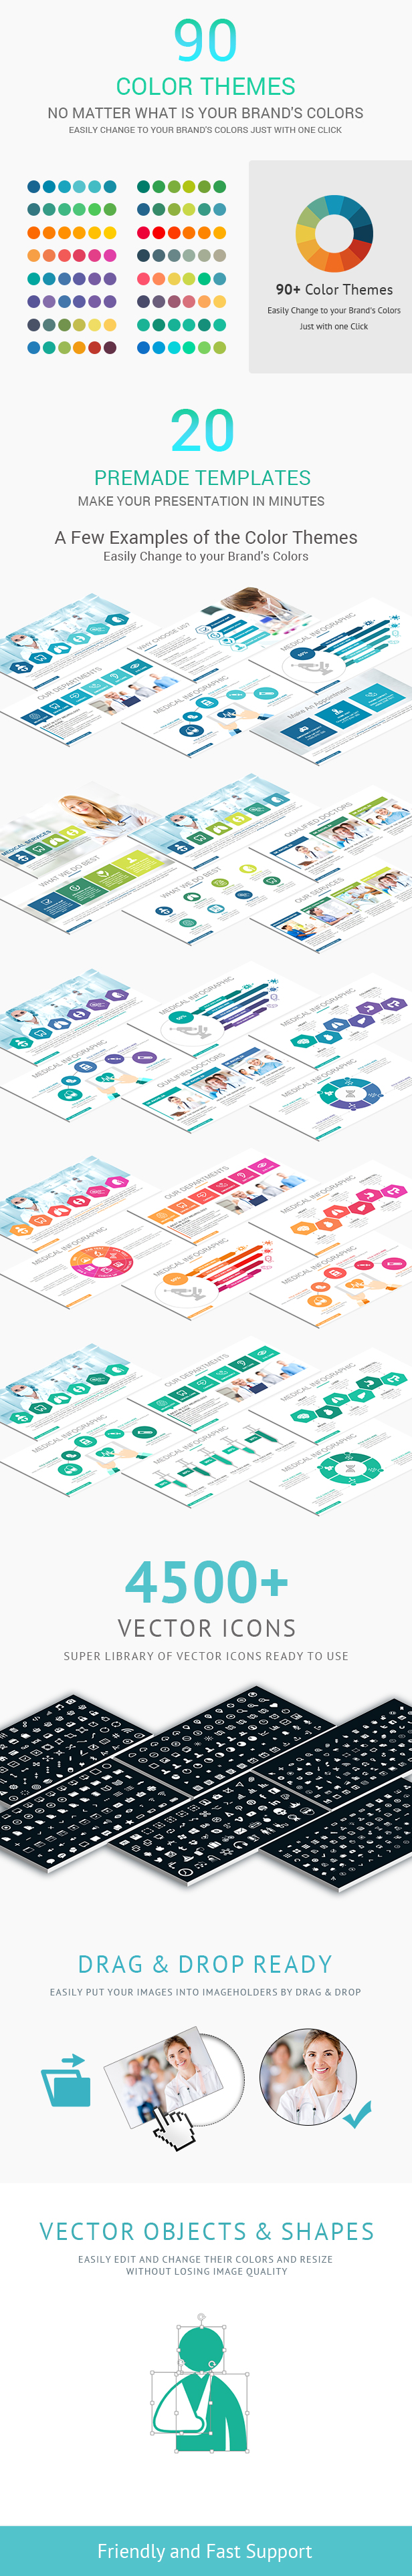 Medical and Healthcare 2 PowerPoint Presentation Template - 1